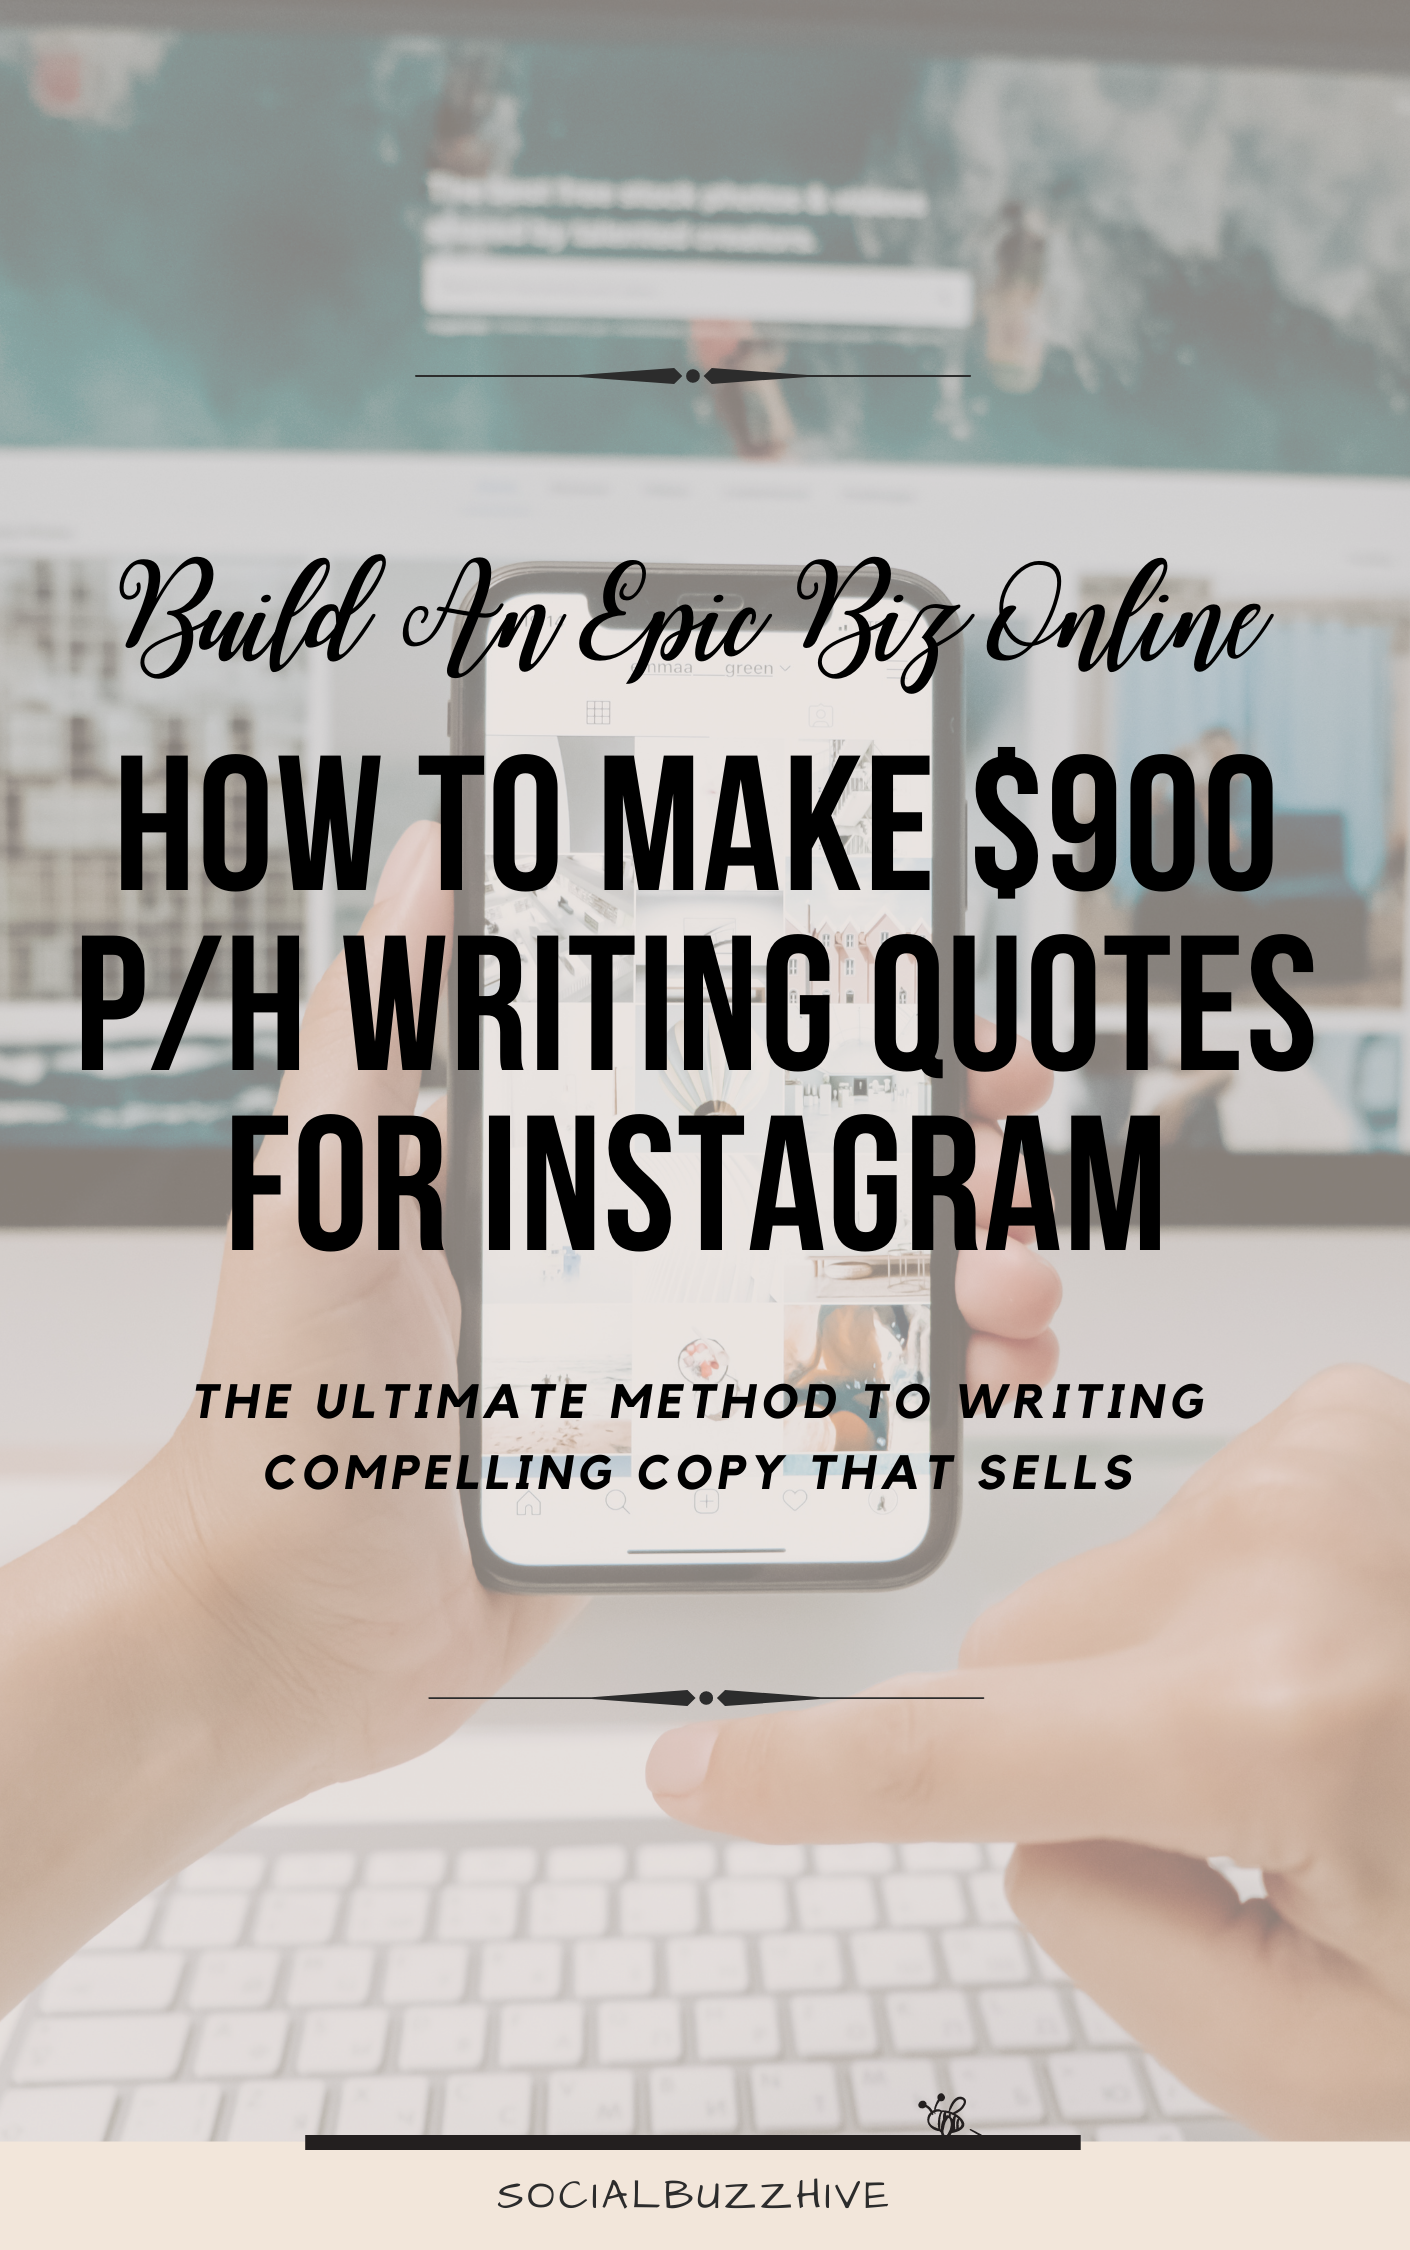 How to Make Up to $900 Per Hour Writing Quotes for Instagram